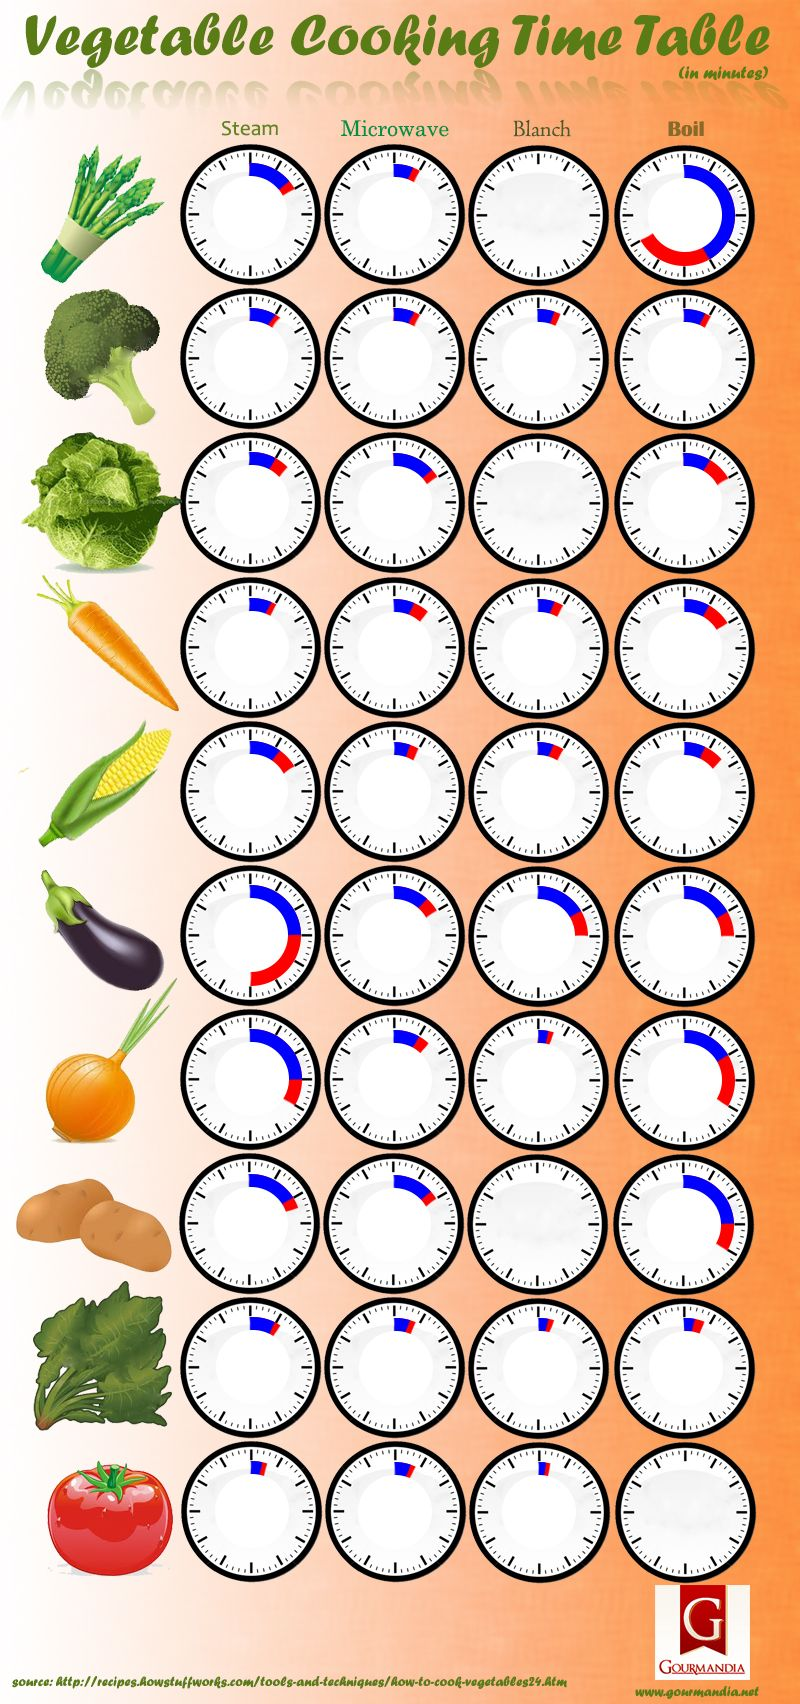 Photo of Vegetable Cooking Time Table